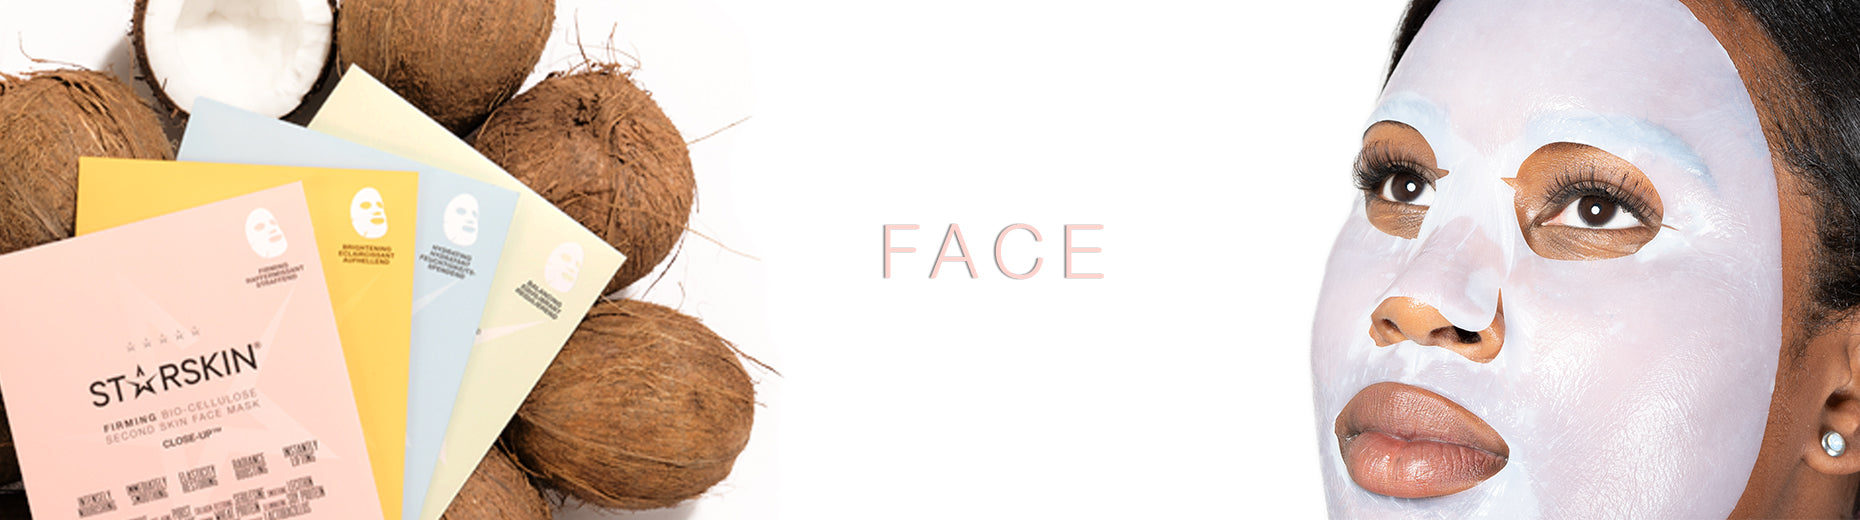 banner face coconuts with bio cellulose range model wearing face sheet mask